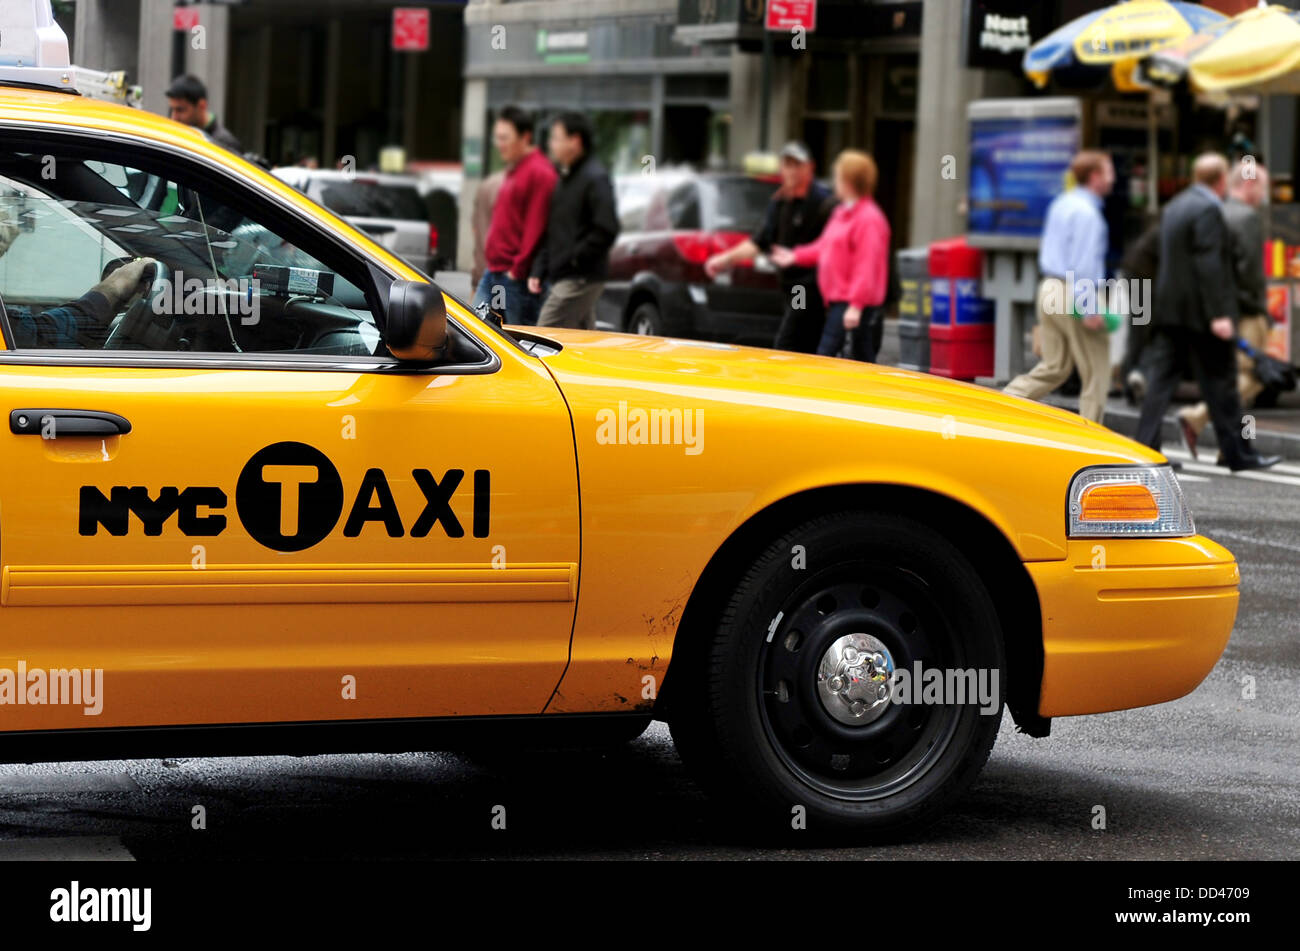 Yellow Taxicab in Manhattan New York City, USA - Stock Image